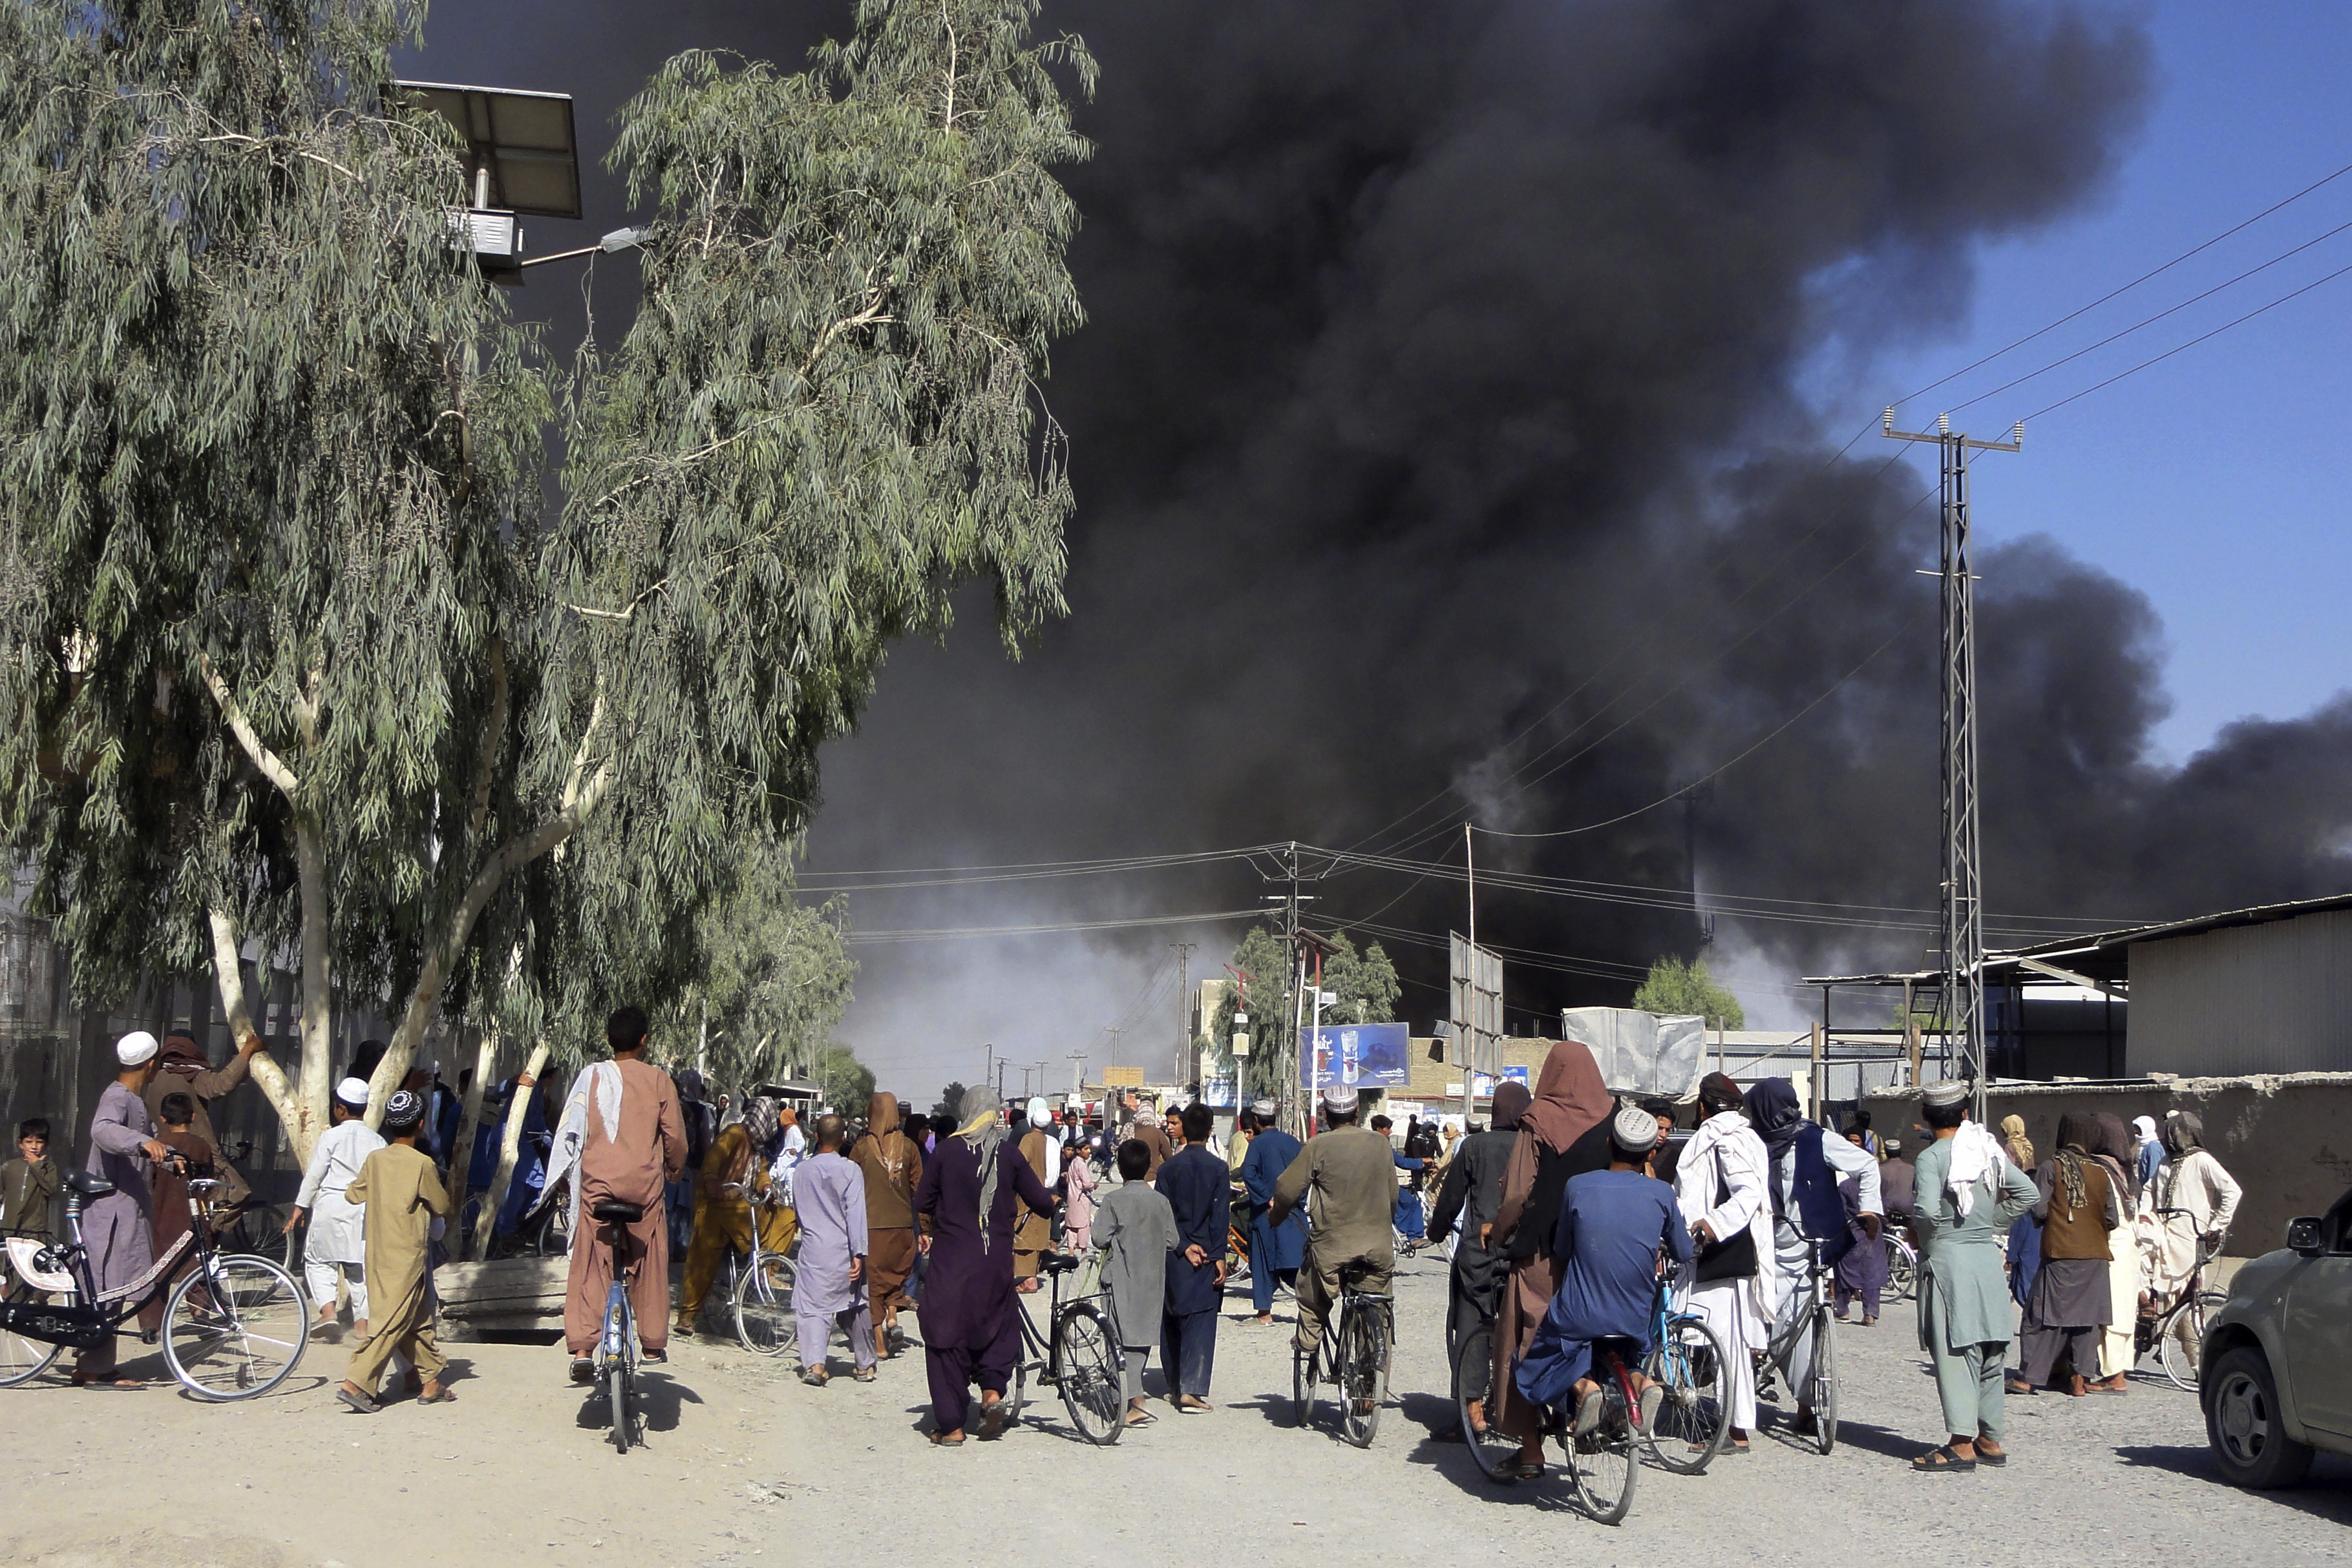 Smoke rises after fighting between the Taliban and Afghan security personnel, in Kandahar, Afghanistan, on Thursday, August 12, 2021.